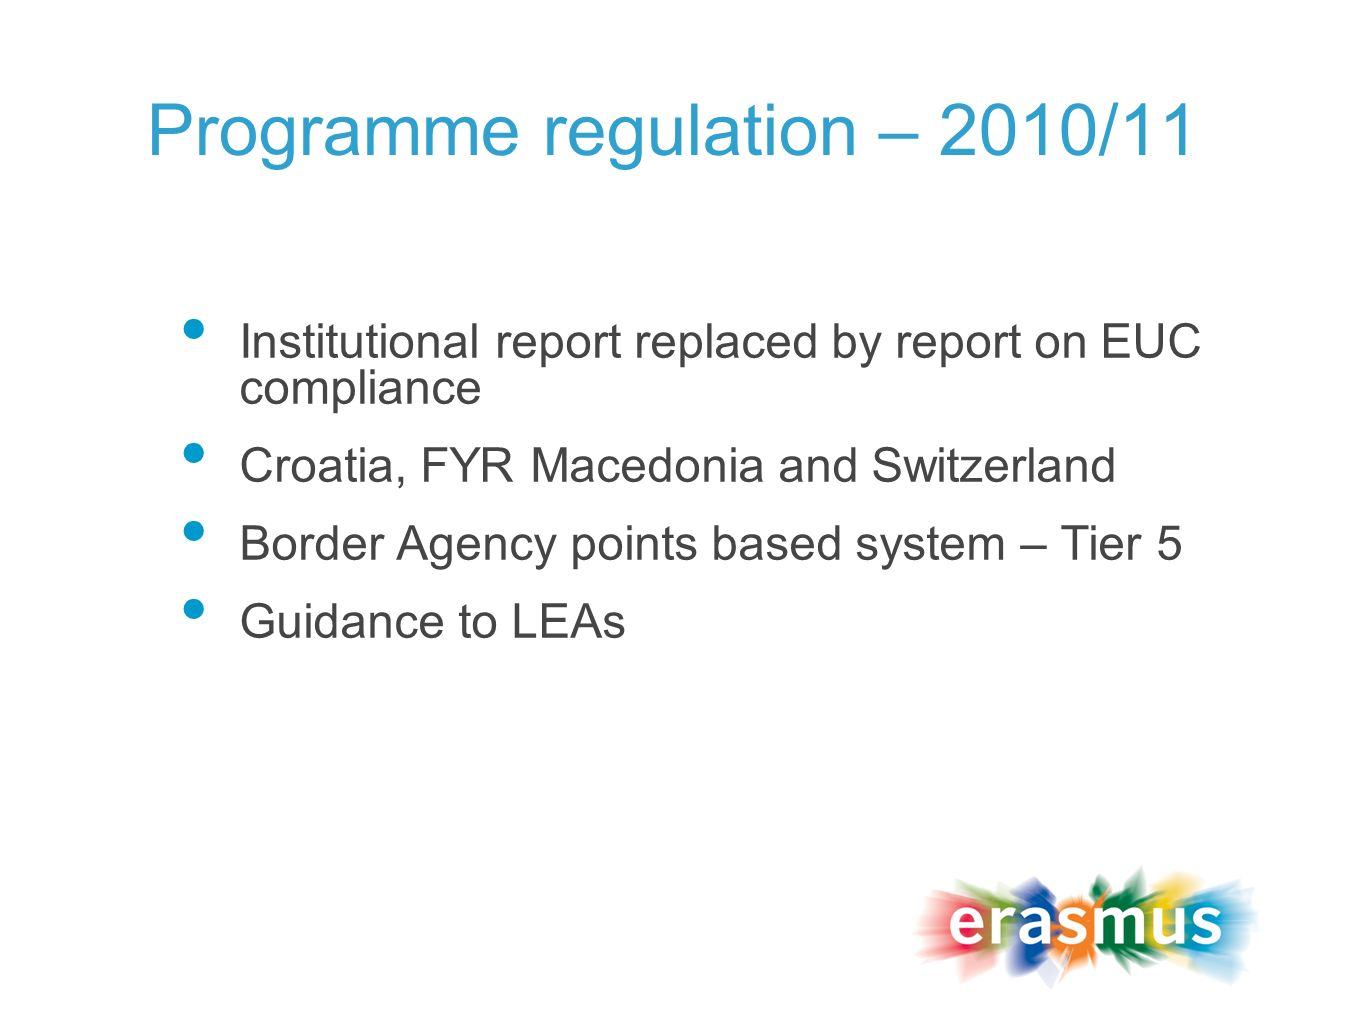 Programme regulation – 2010/11 Institutional report replaced by report on EUC compliance Croatia, FYR Macedonia and Switzerland Border Agency points based system – Tier 5 Guidance to LEAs